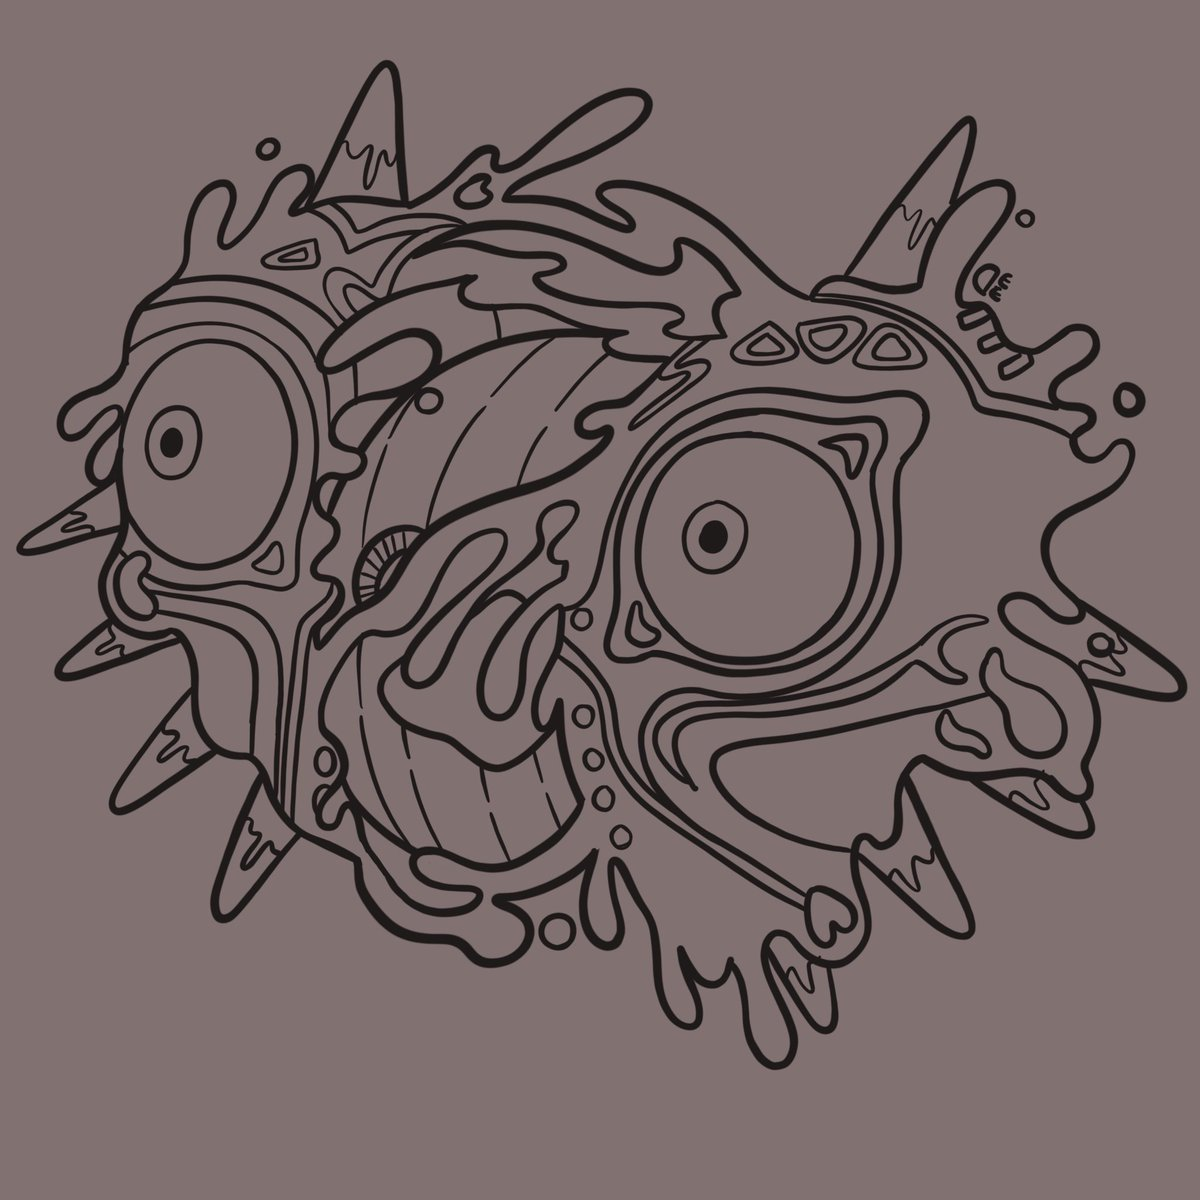 Deepeearts  on Twitter   Sketch   line   colour  art  illustration     Deepeearts  on Twitter   Sketch   line   colour  art  illustration   TheLegendofZelda  majorasmask  nintendo  artistsontwitter